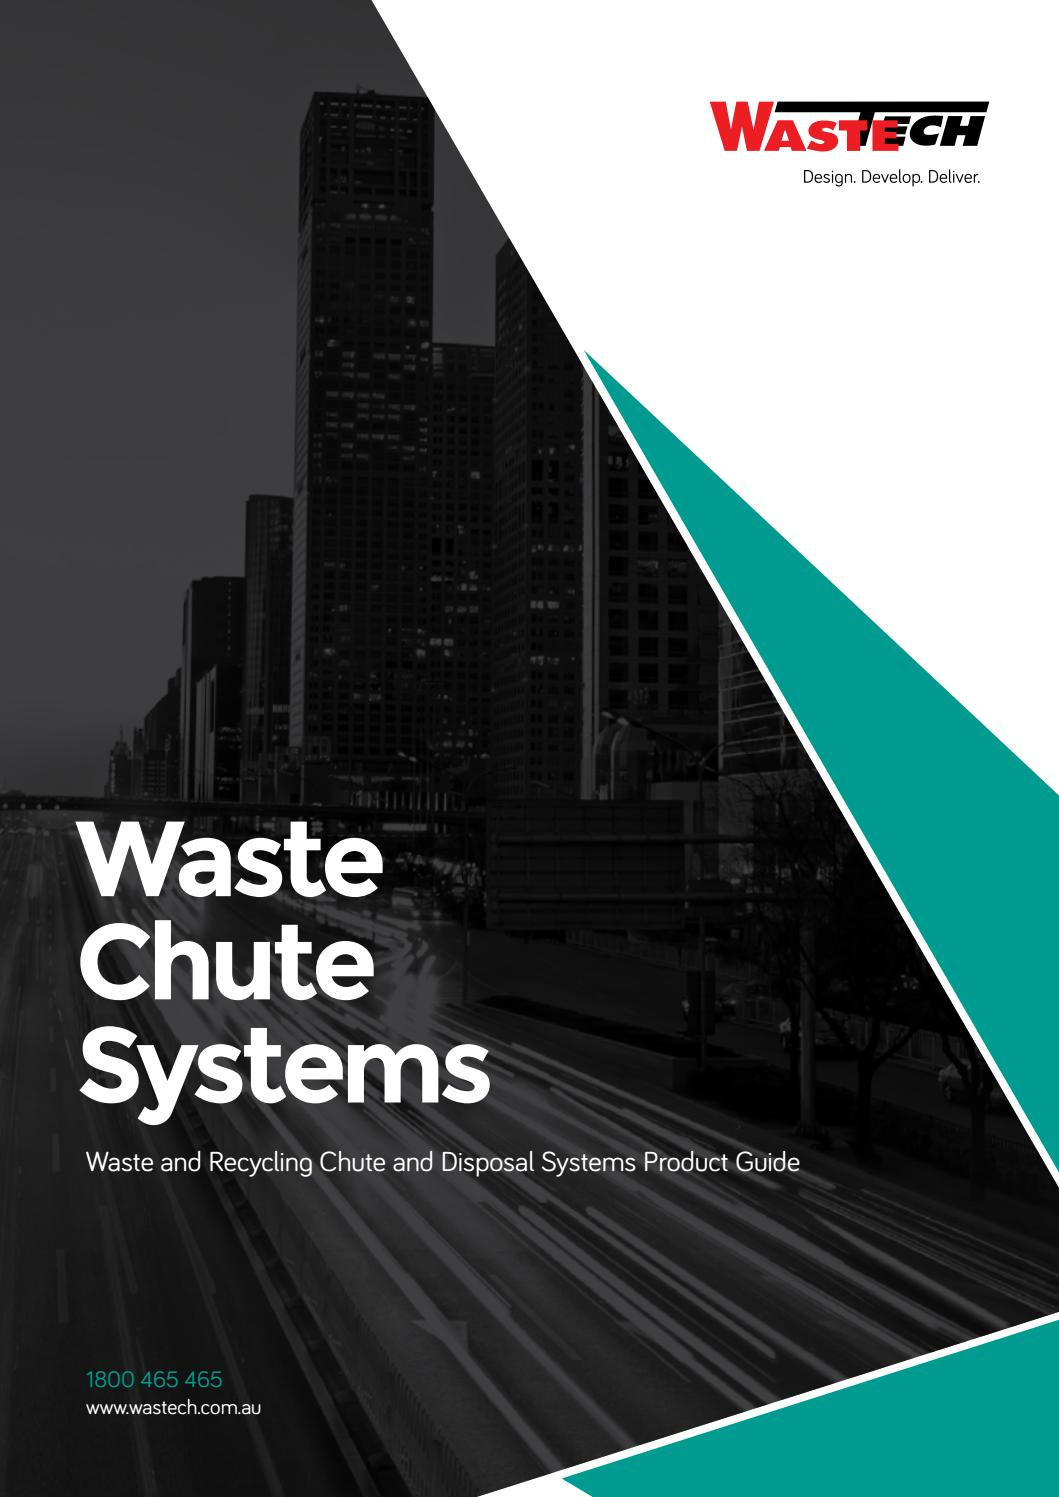 Wastech Waste Chutes Systems Brochure By Wastech